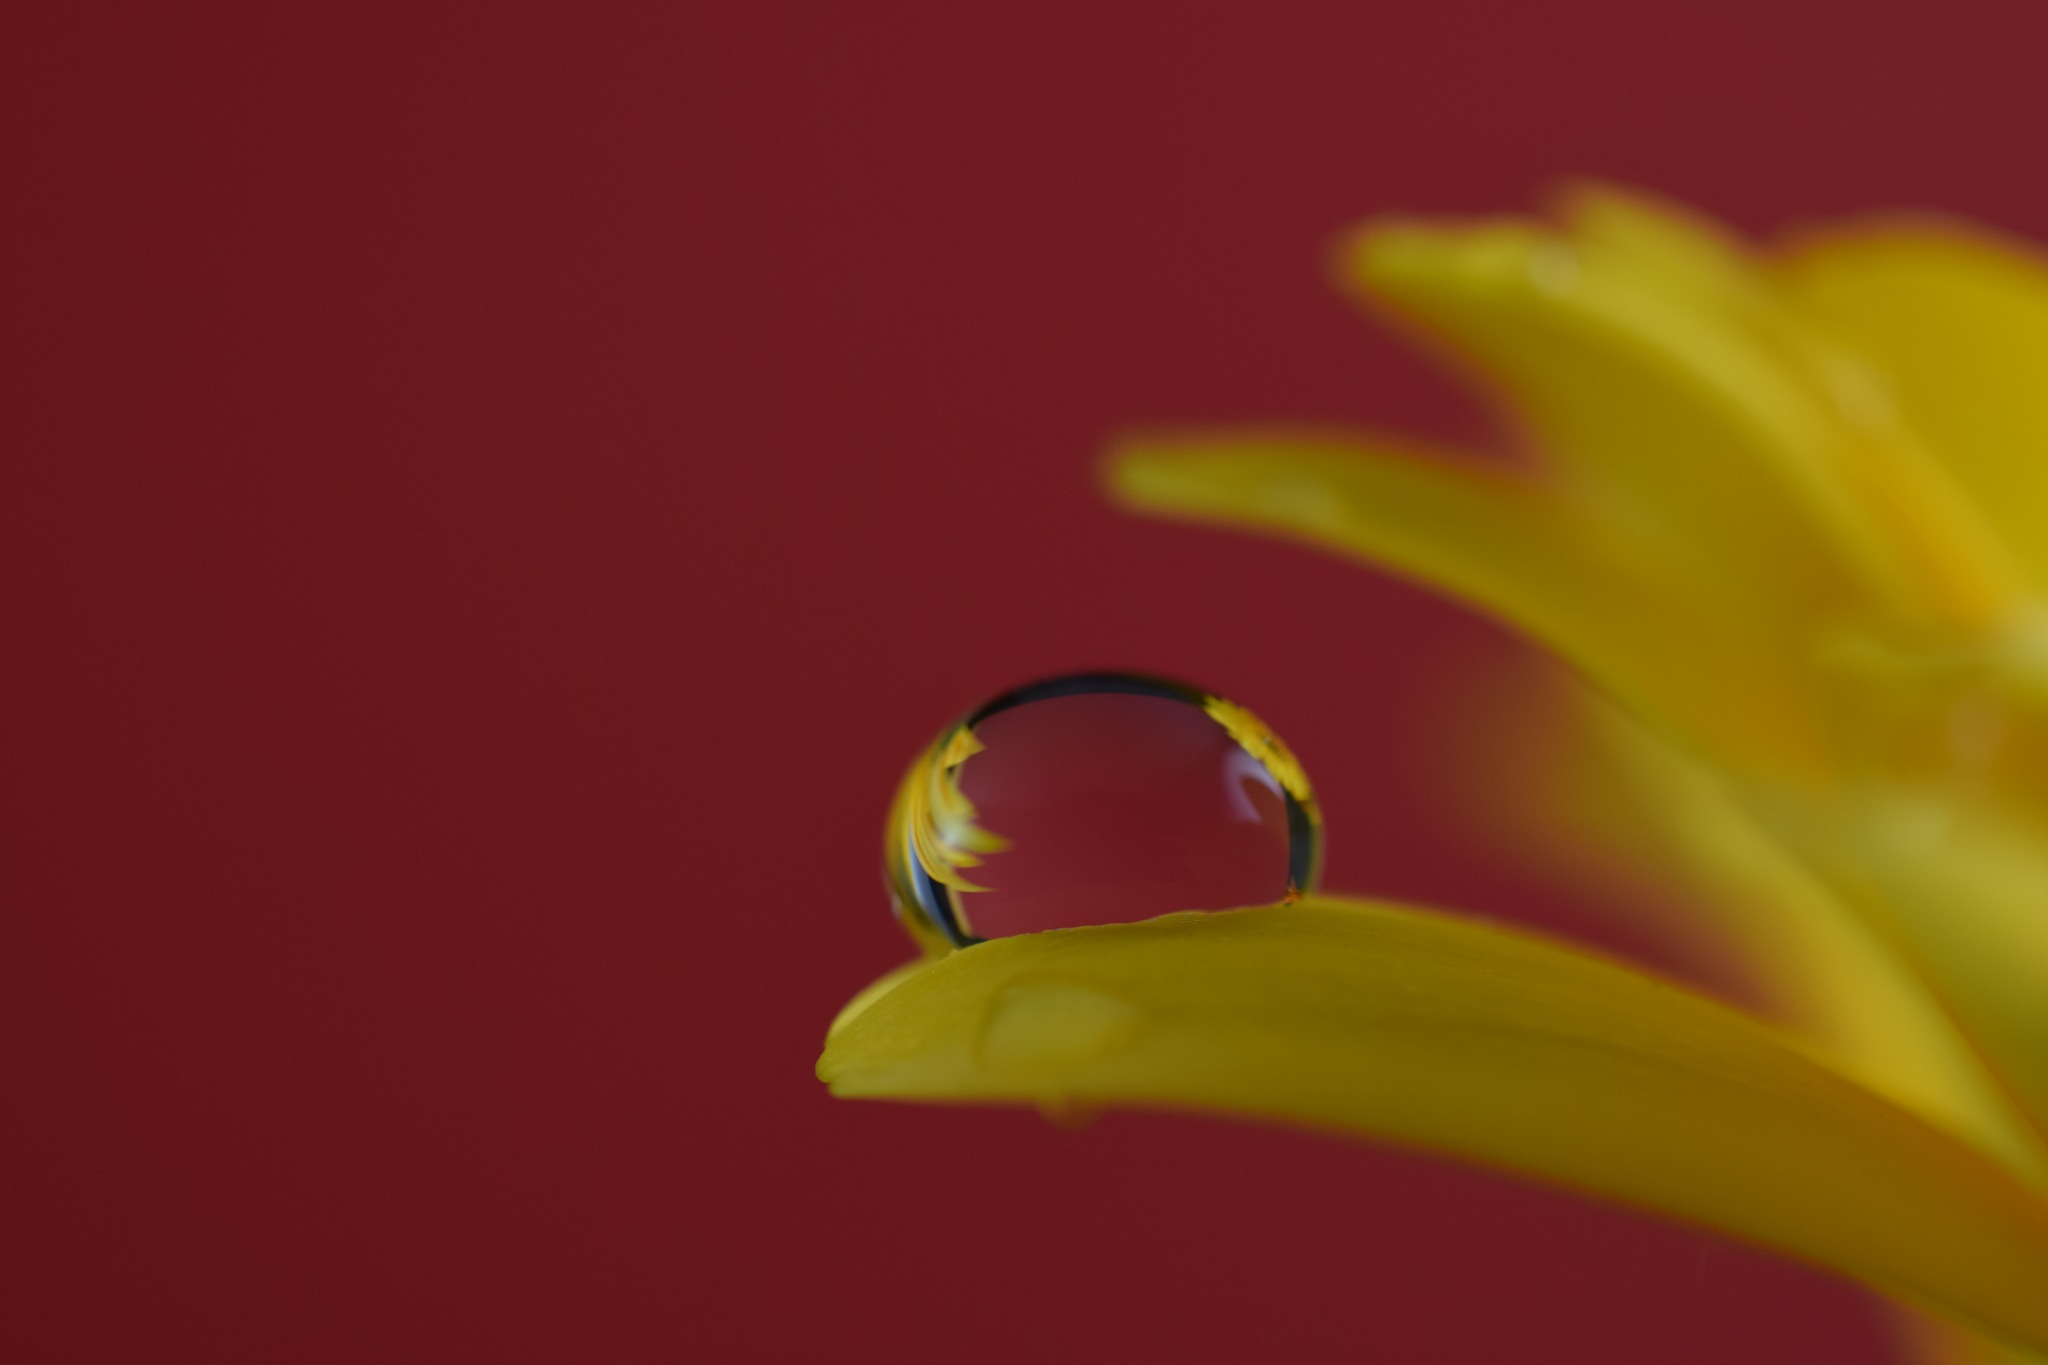 One drop on yellow germini flower by Theresia Buskas